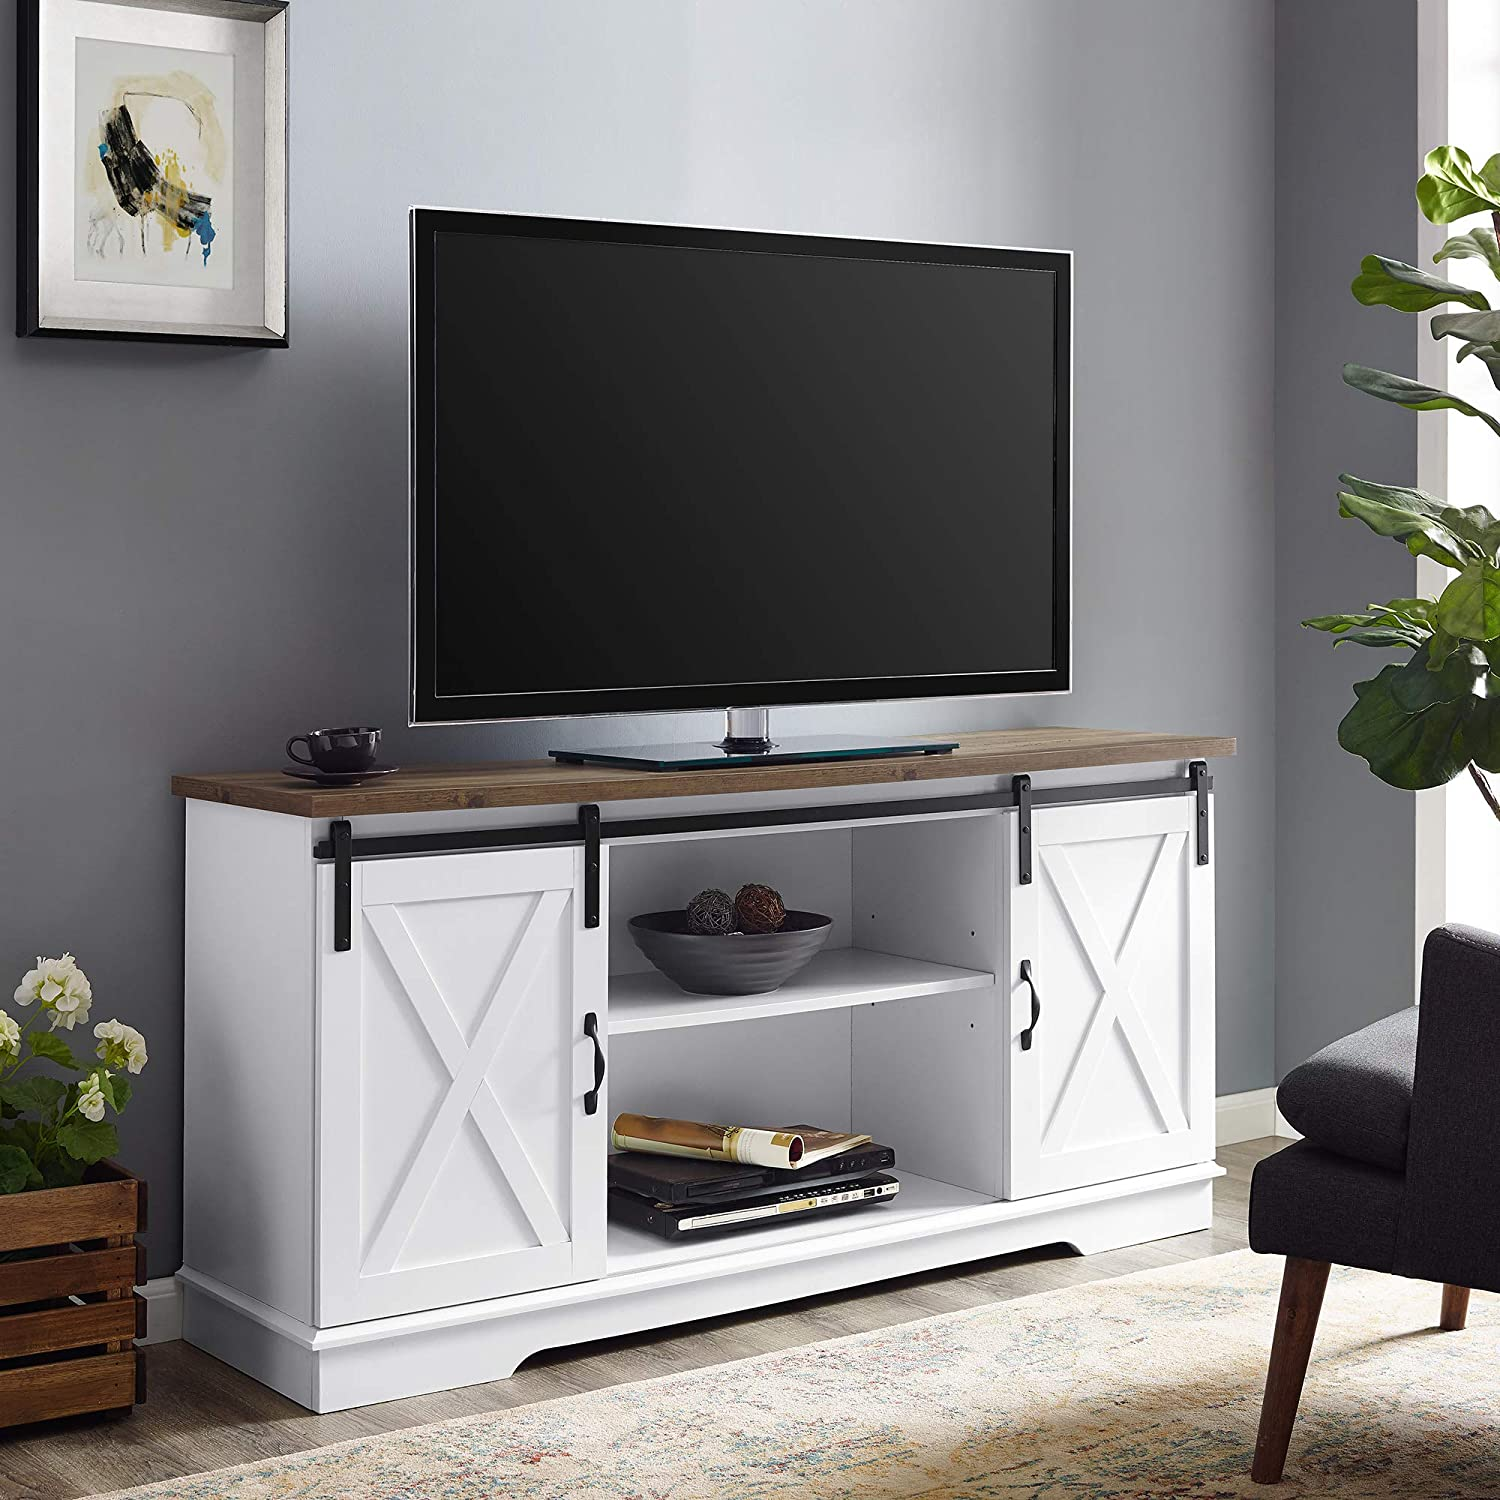 Modern White Farmhouse Sliding Barn Door TV Stand